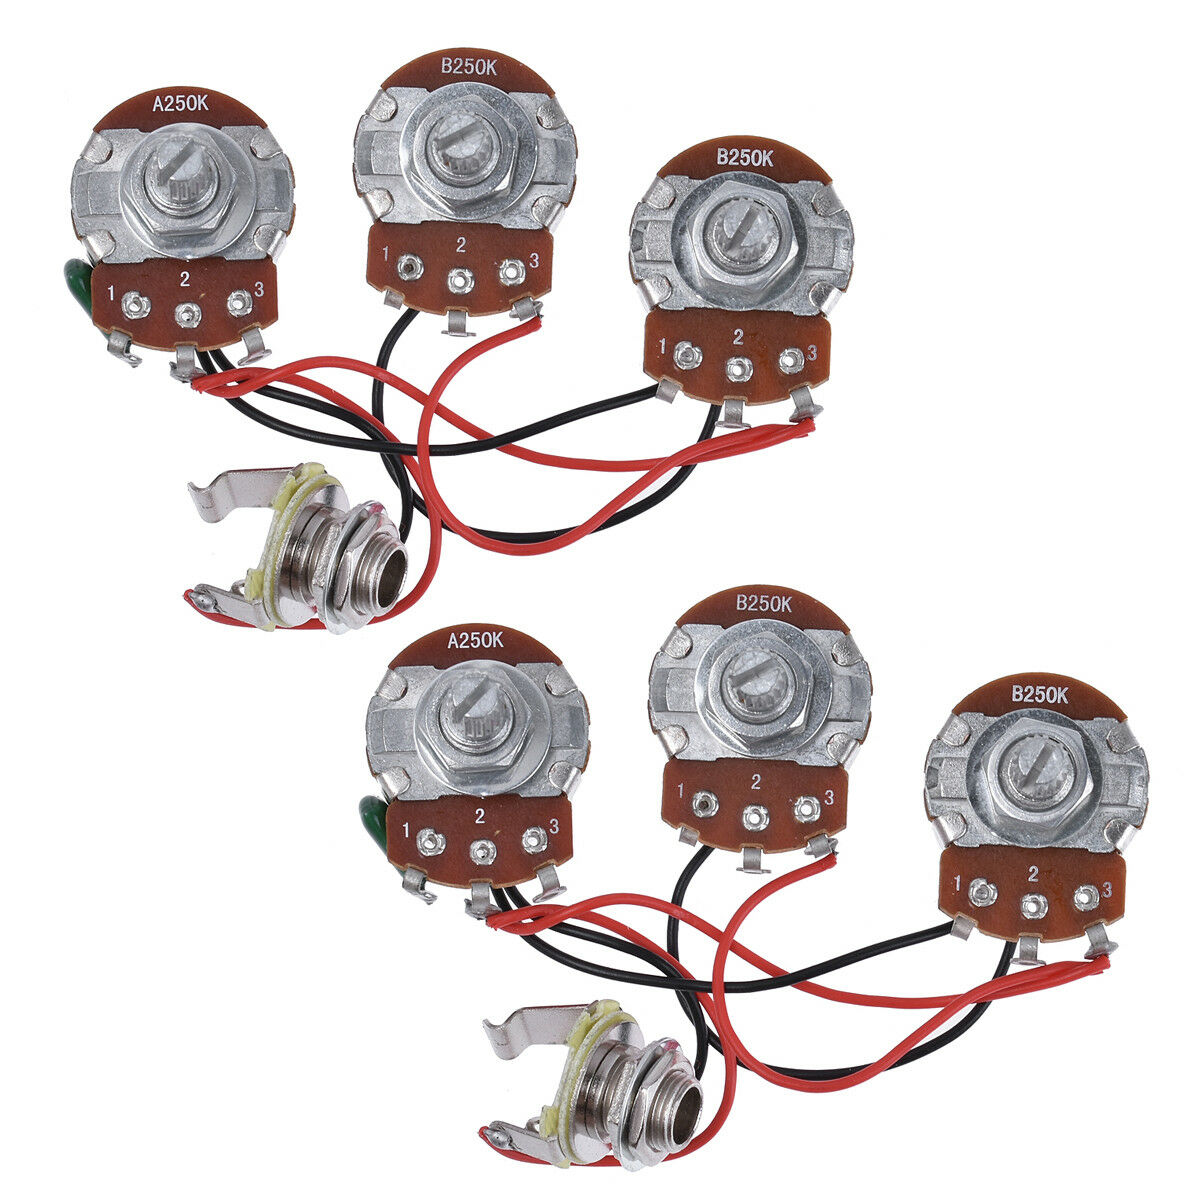 Wiring Harness Prewired Kit 250k Pots 2v1t For Jazz Bass Guitar Set Of Strat 5 Way Blade Switch 500k Full Size Parts 2